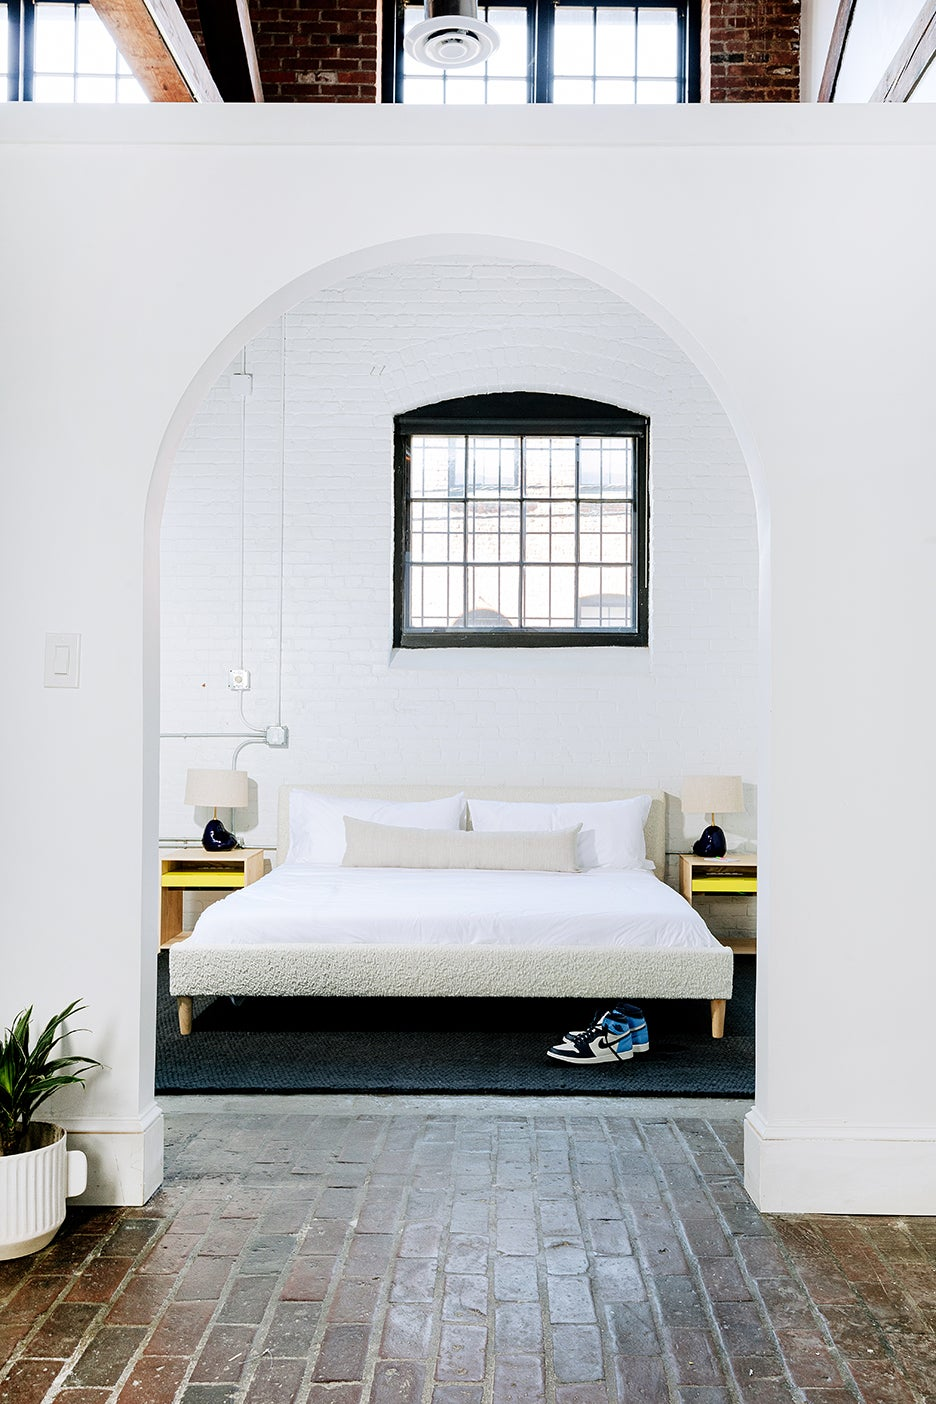 archway leading to bedroom